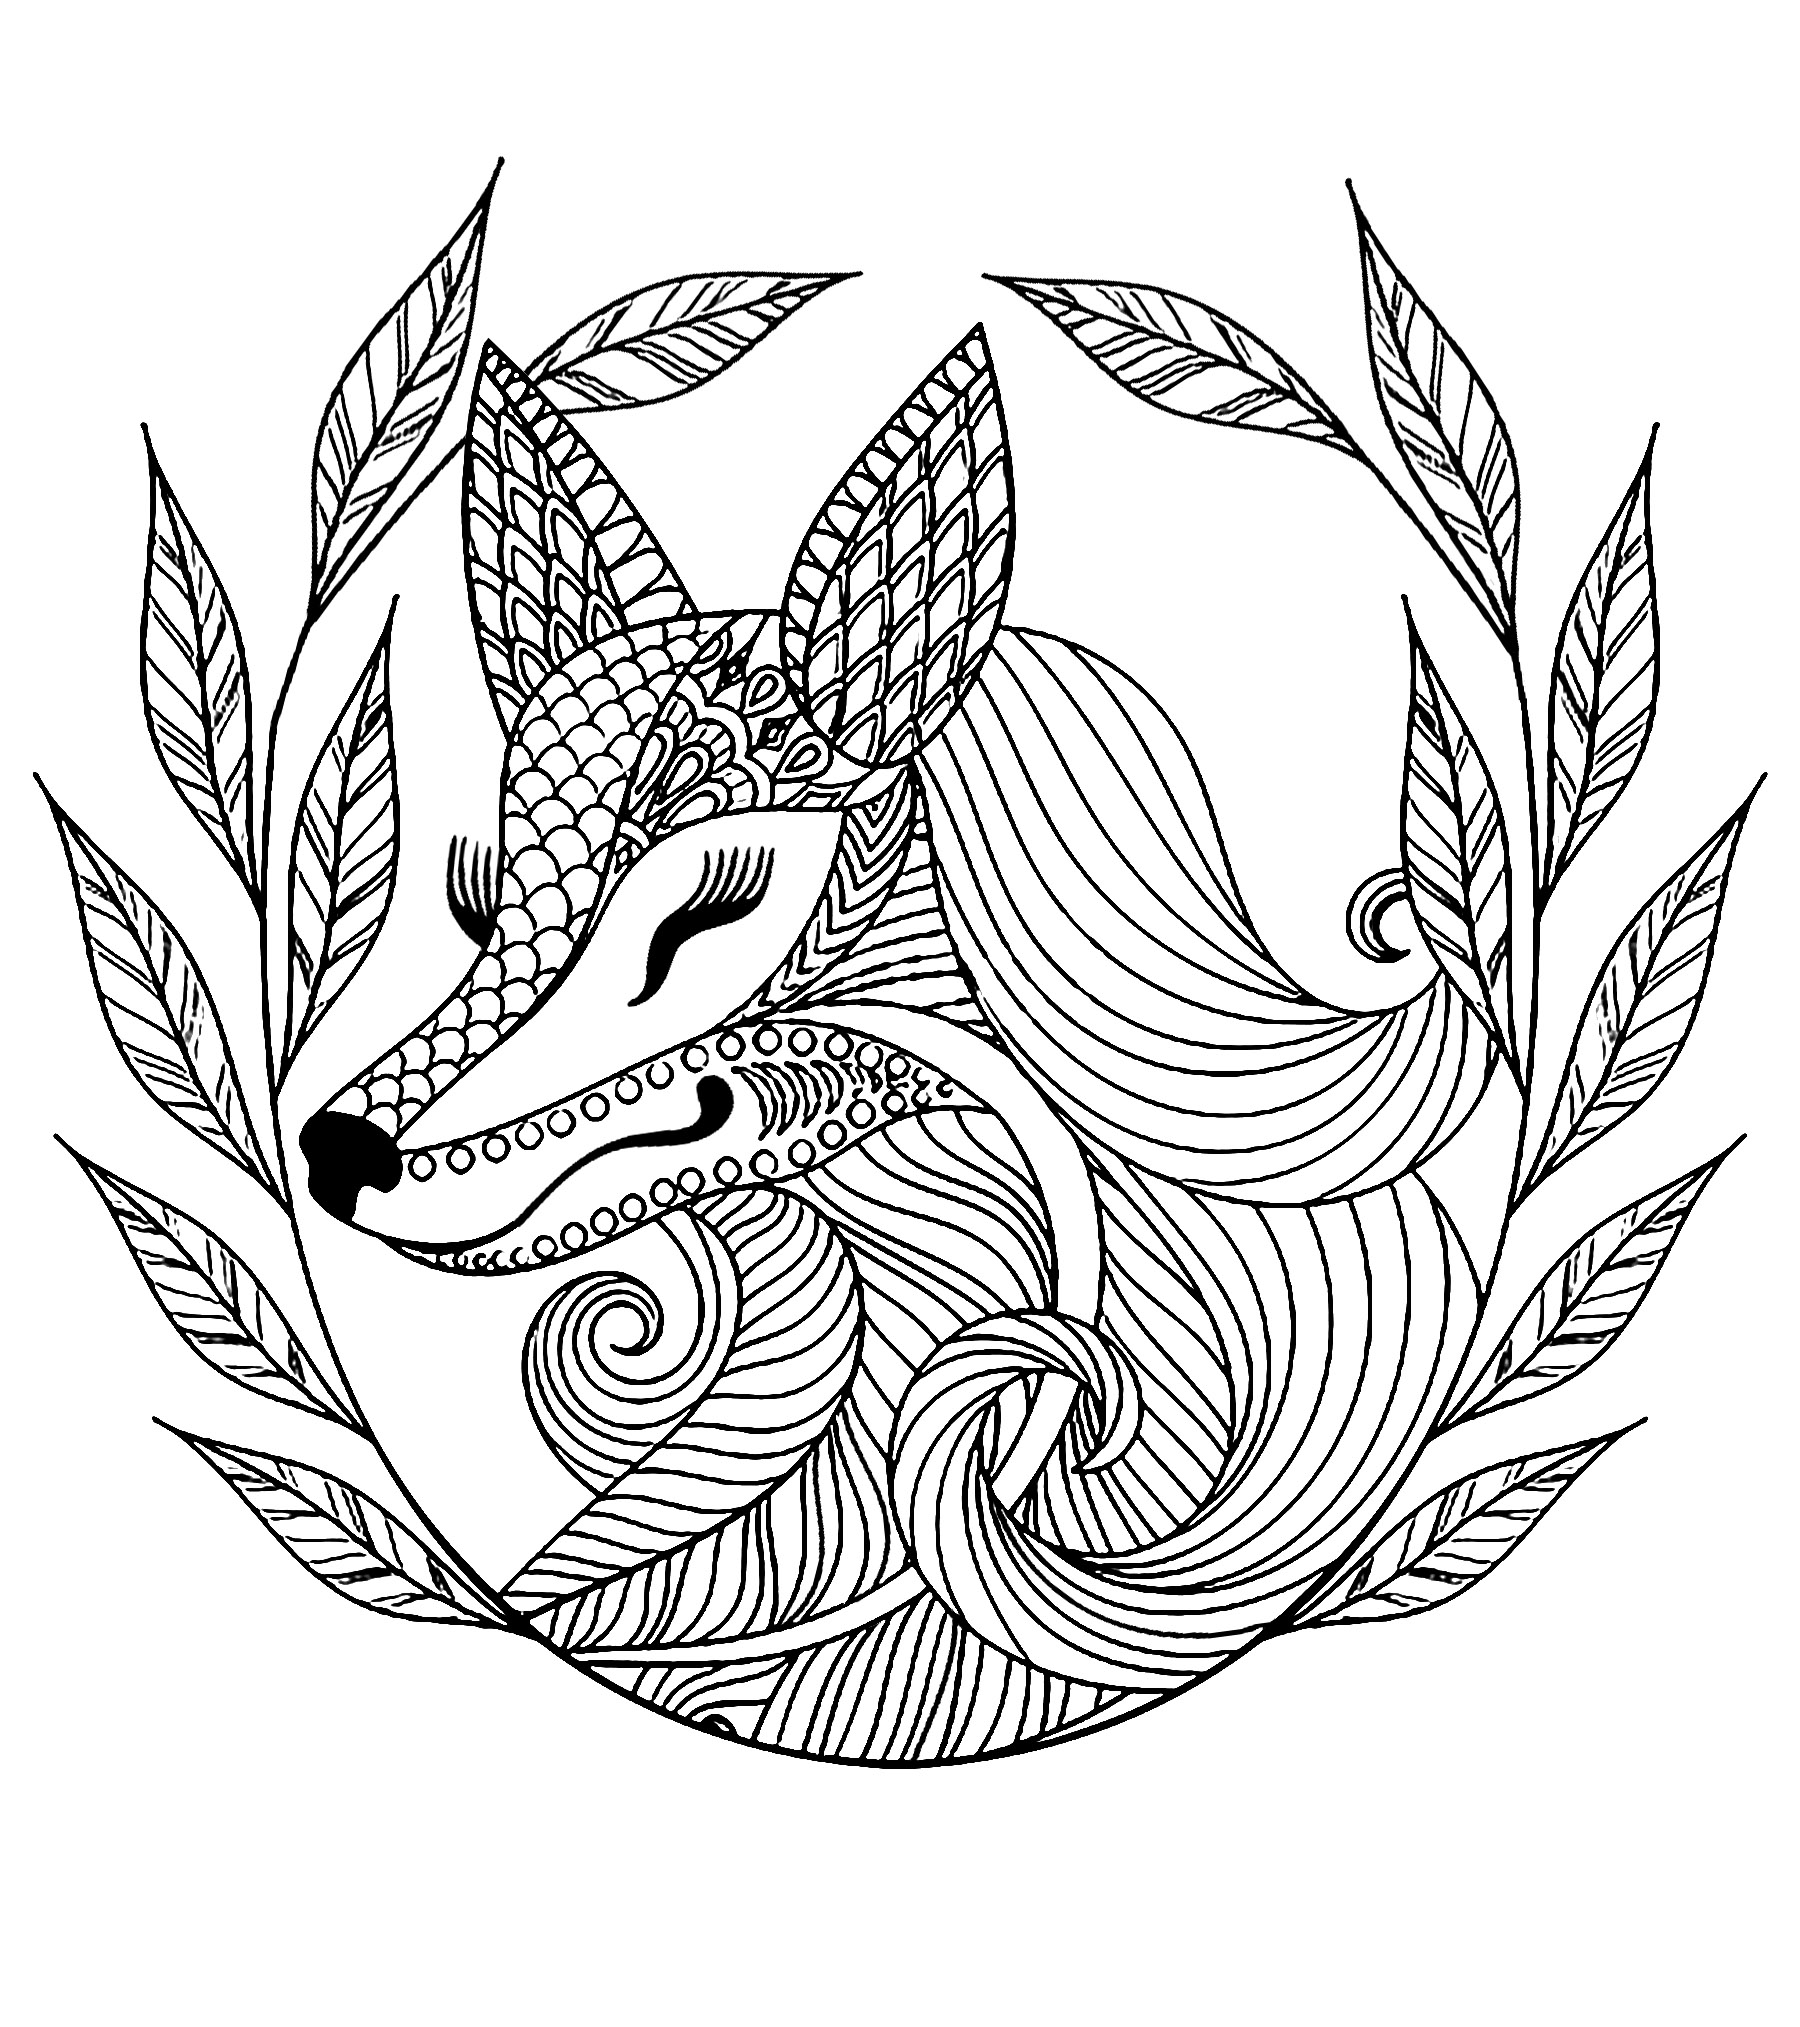 Fox coloring page to print and color